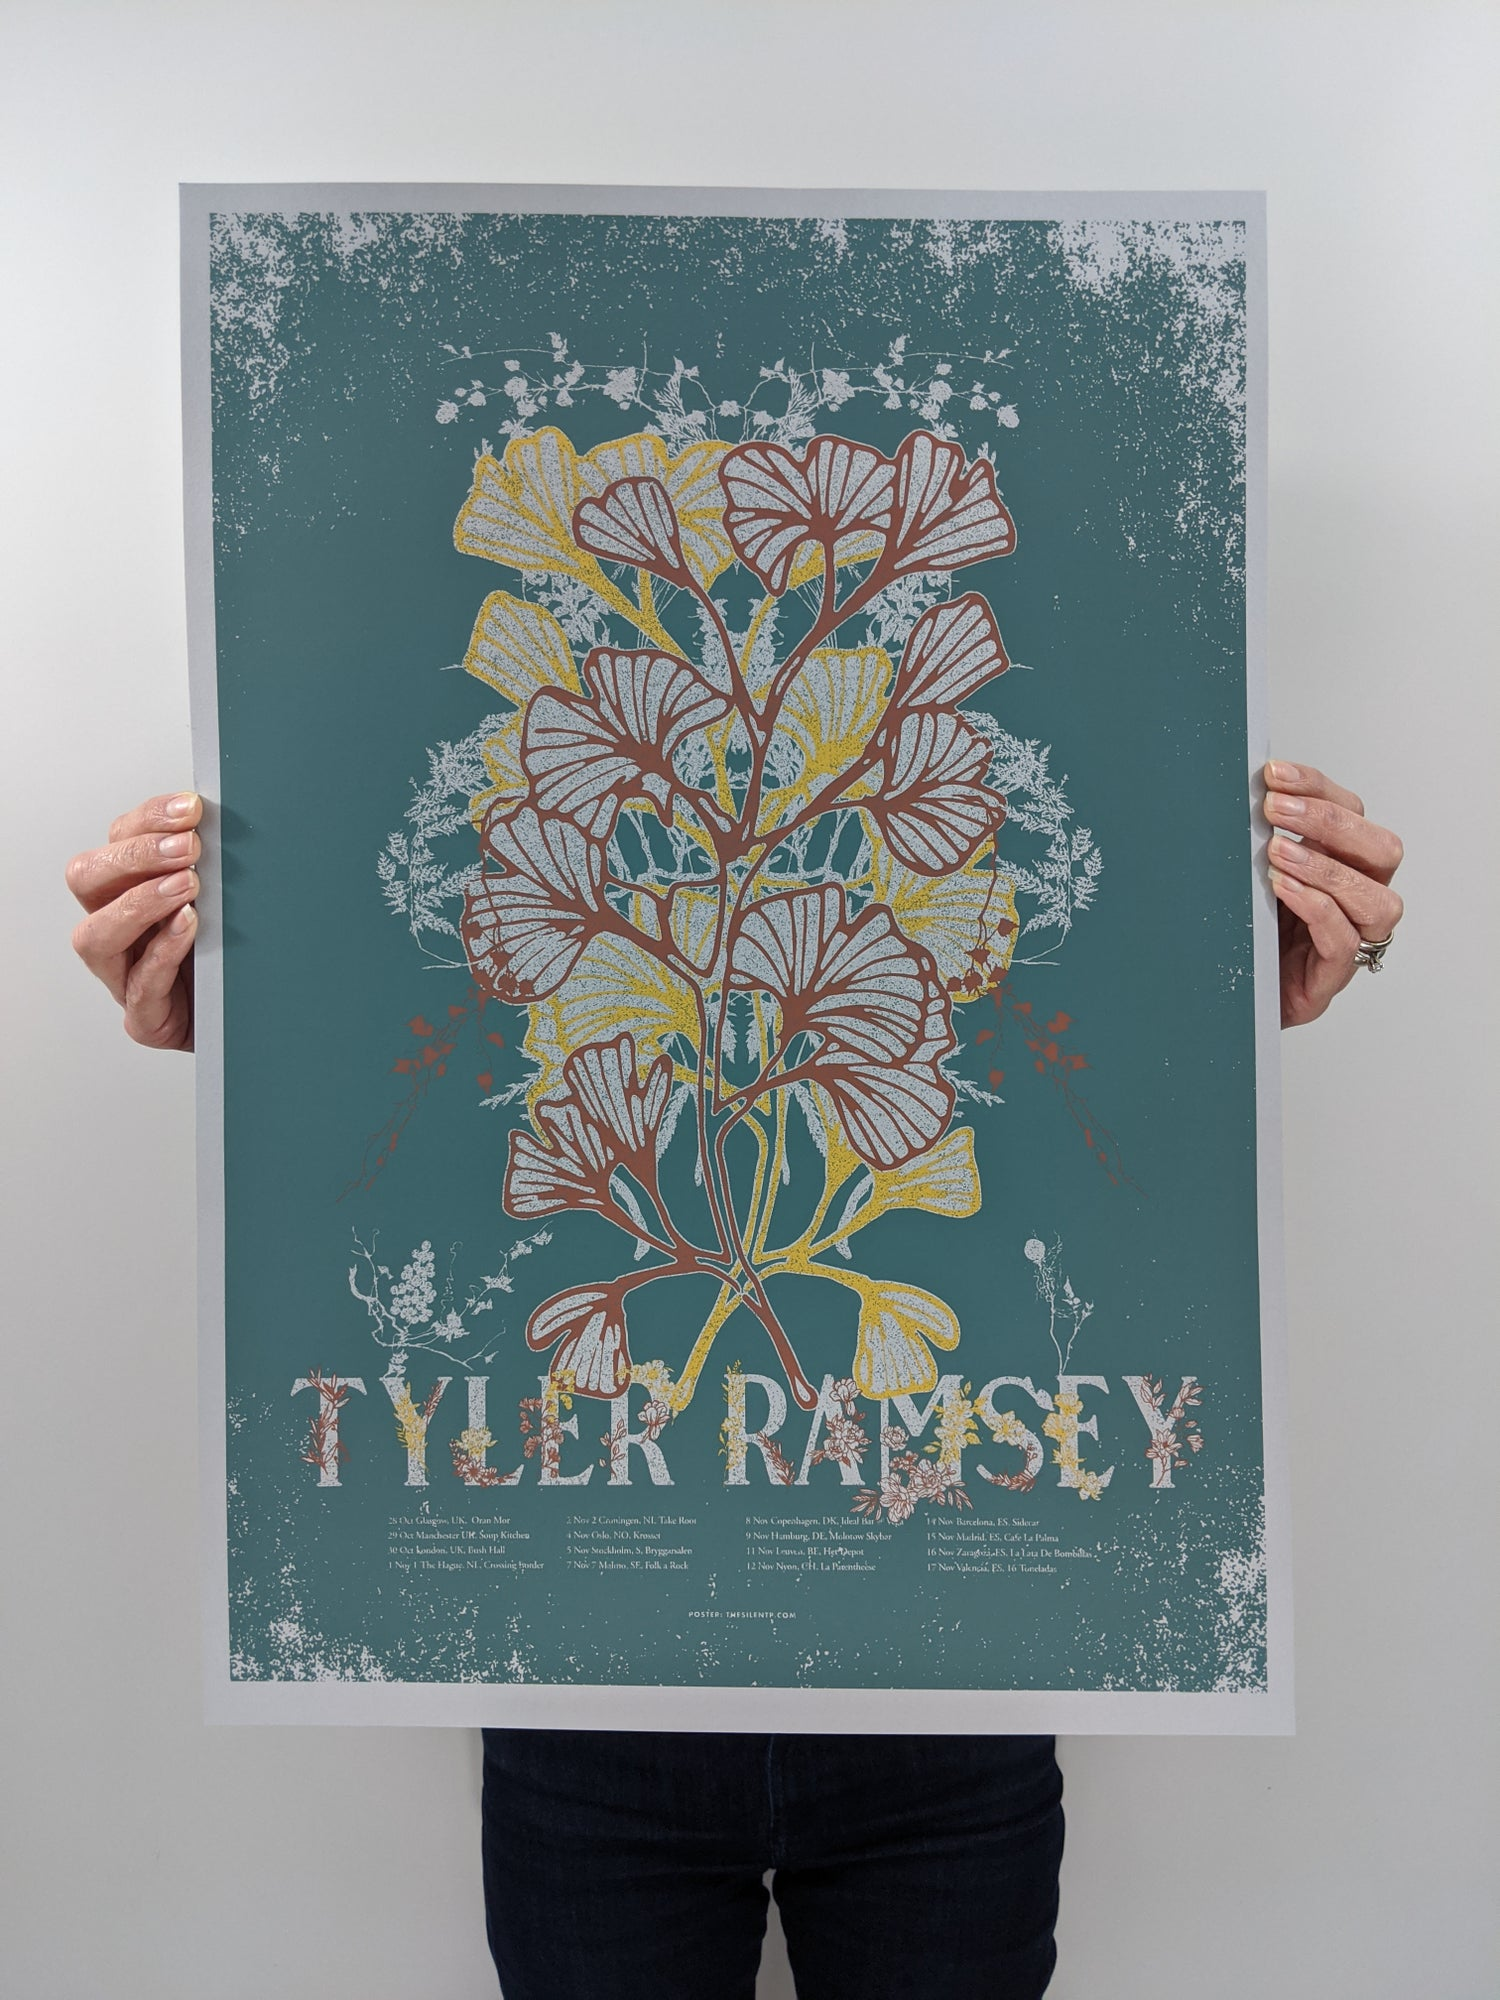 Image of Tyler Ramsey, European Tour Poster, 2019